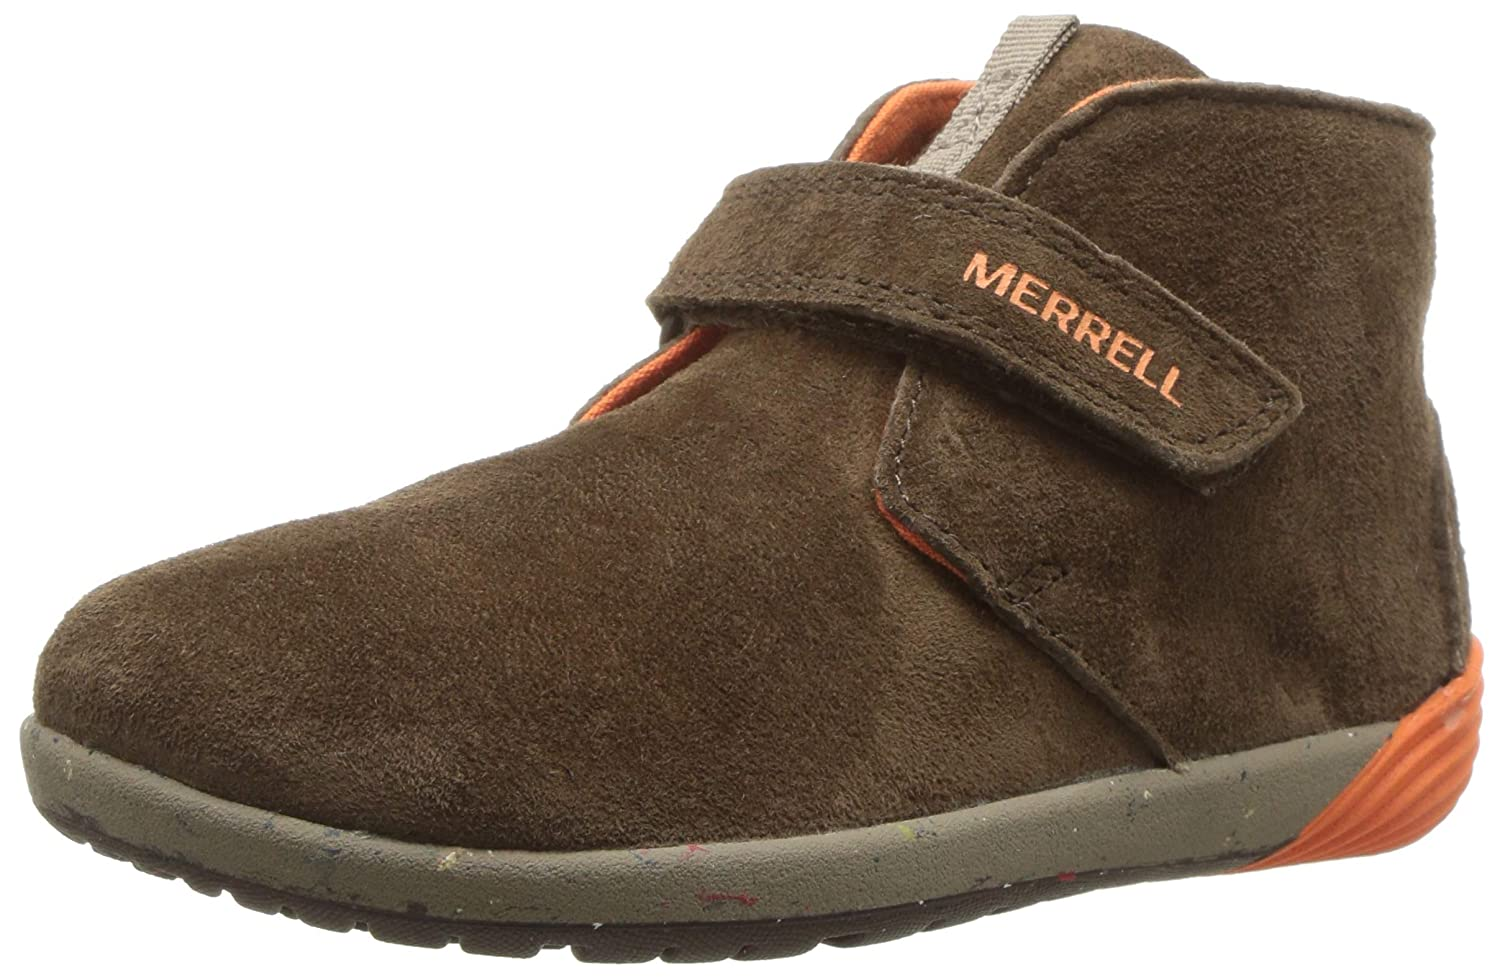 Merrell Kids' Bare Steps Boot Fashion